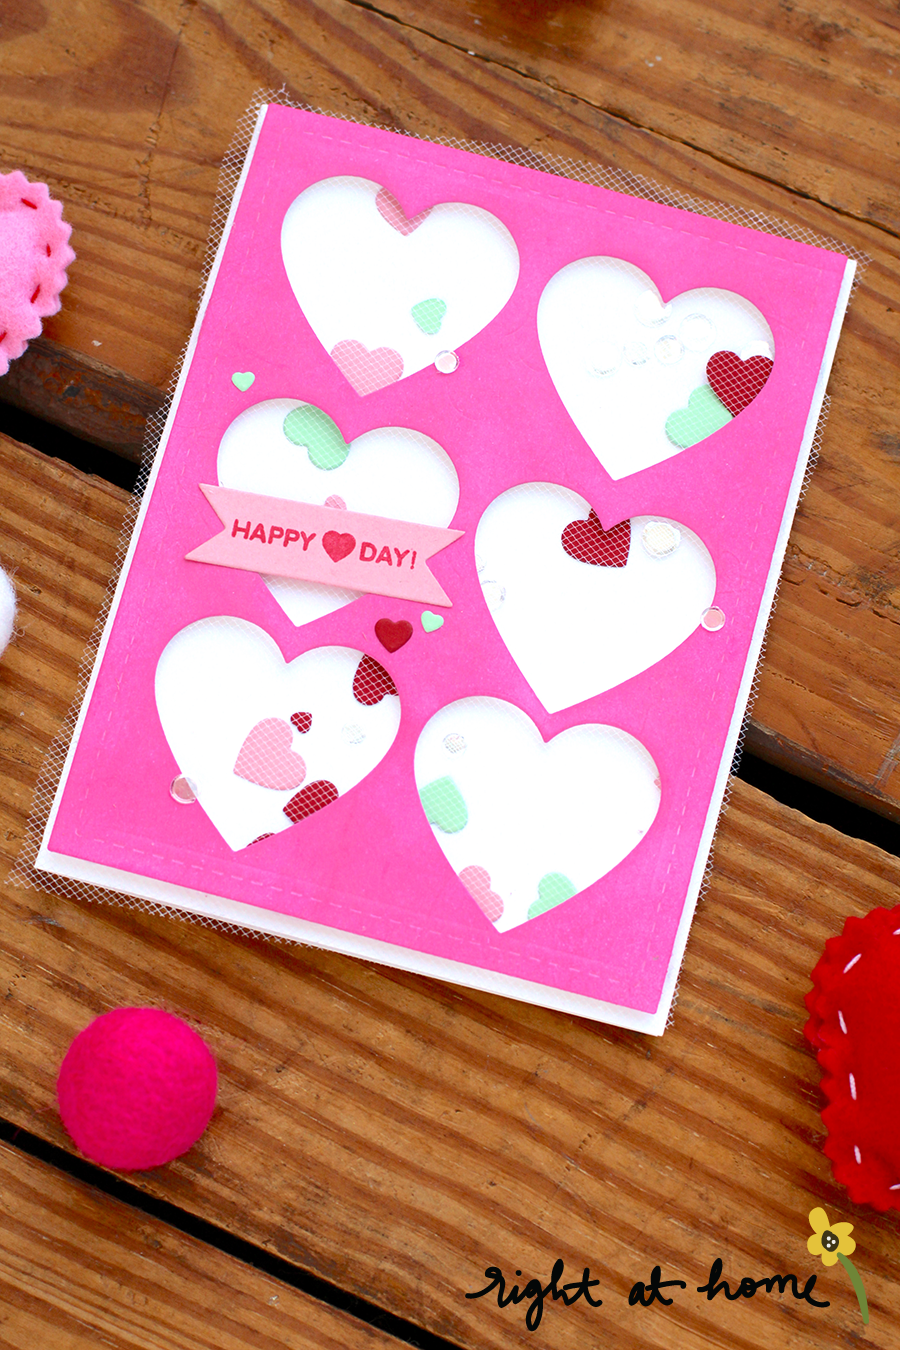 Heart Shaker Card Using Die-Cuts + Tulle // rightathomeshop.com/blog